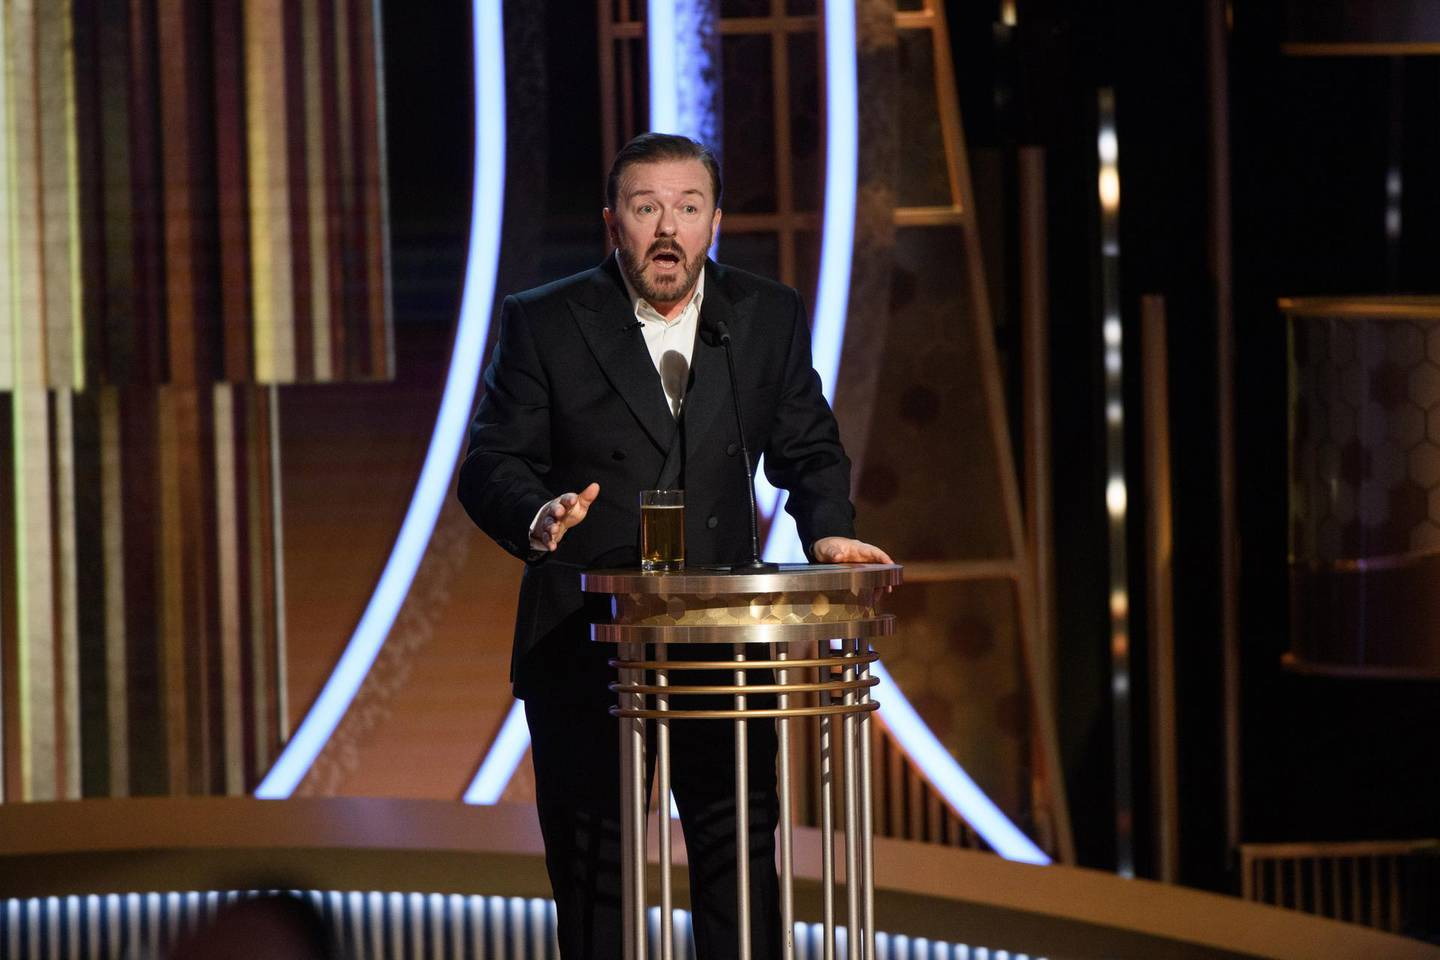 epa08105966 A handout photo made available by the Hollywood Foreign Press Association (HFPA) shows host Ricky Gervais on stage during the 77th annual Golden Globe Awards ceremony at the Beverly Hilton Hotel, in Beverly Hills, California, USA, 05 January 2020.  EPA/HFPA / HANDOUT ATTENTION EDITORS: IMAGE MAY ONLY BE USED UNALTERED, ONE TIME USE ONLY WITHIN 60 DAYS MANDATORY CREDIT HANDOUT EDITORIAL USE ONLY/NO SALES HANDOUT EDITORIAL USE ONLY/NO SALES